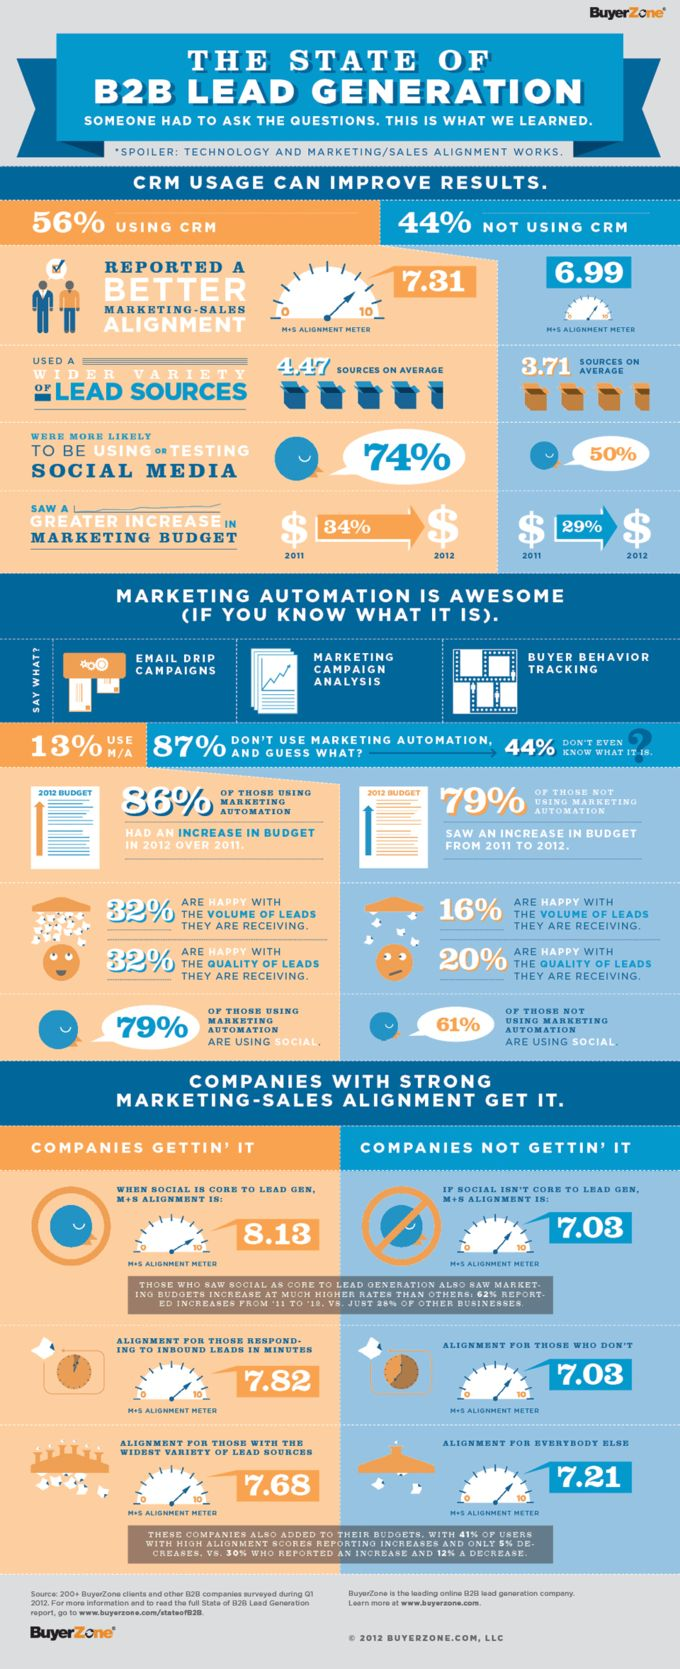 The State of B2B Lead Generation – a great infographic by BuyerZone